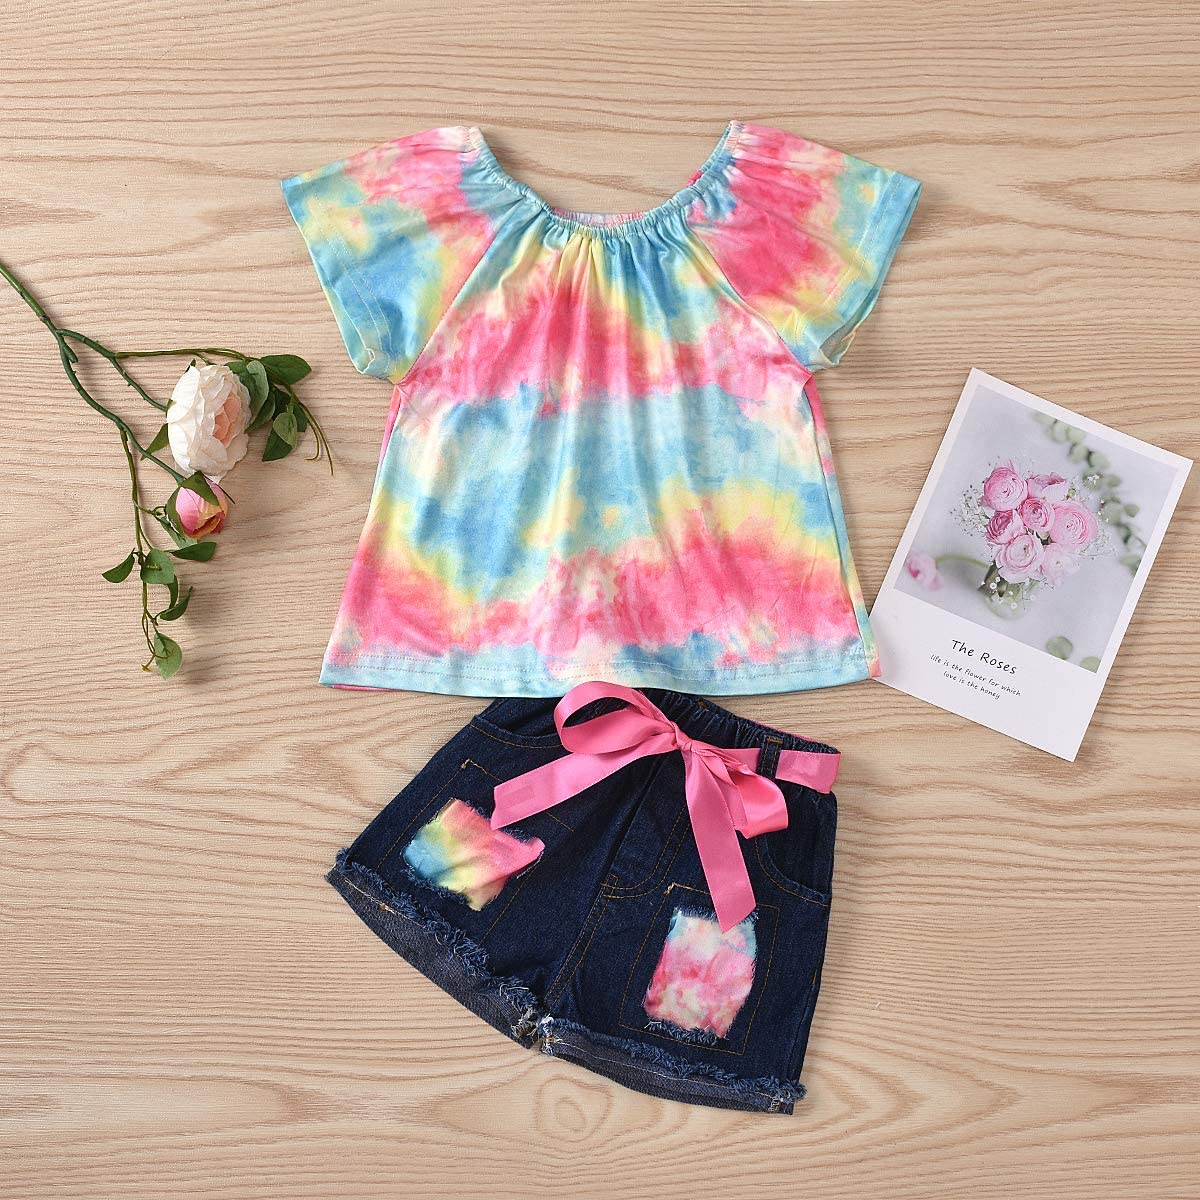 Toddler Kids Girl Summer Clothes Short Sleeve Floral T-Shirt Tops Ripped Jeans Shorts 2Pcs Outfits Set